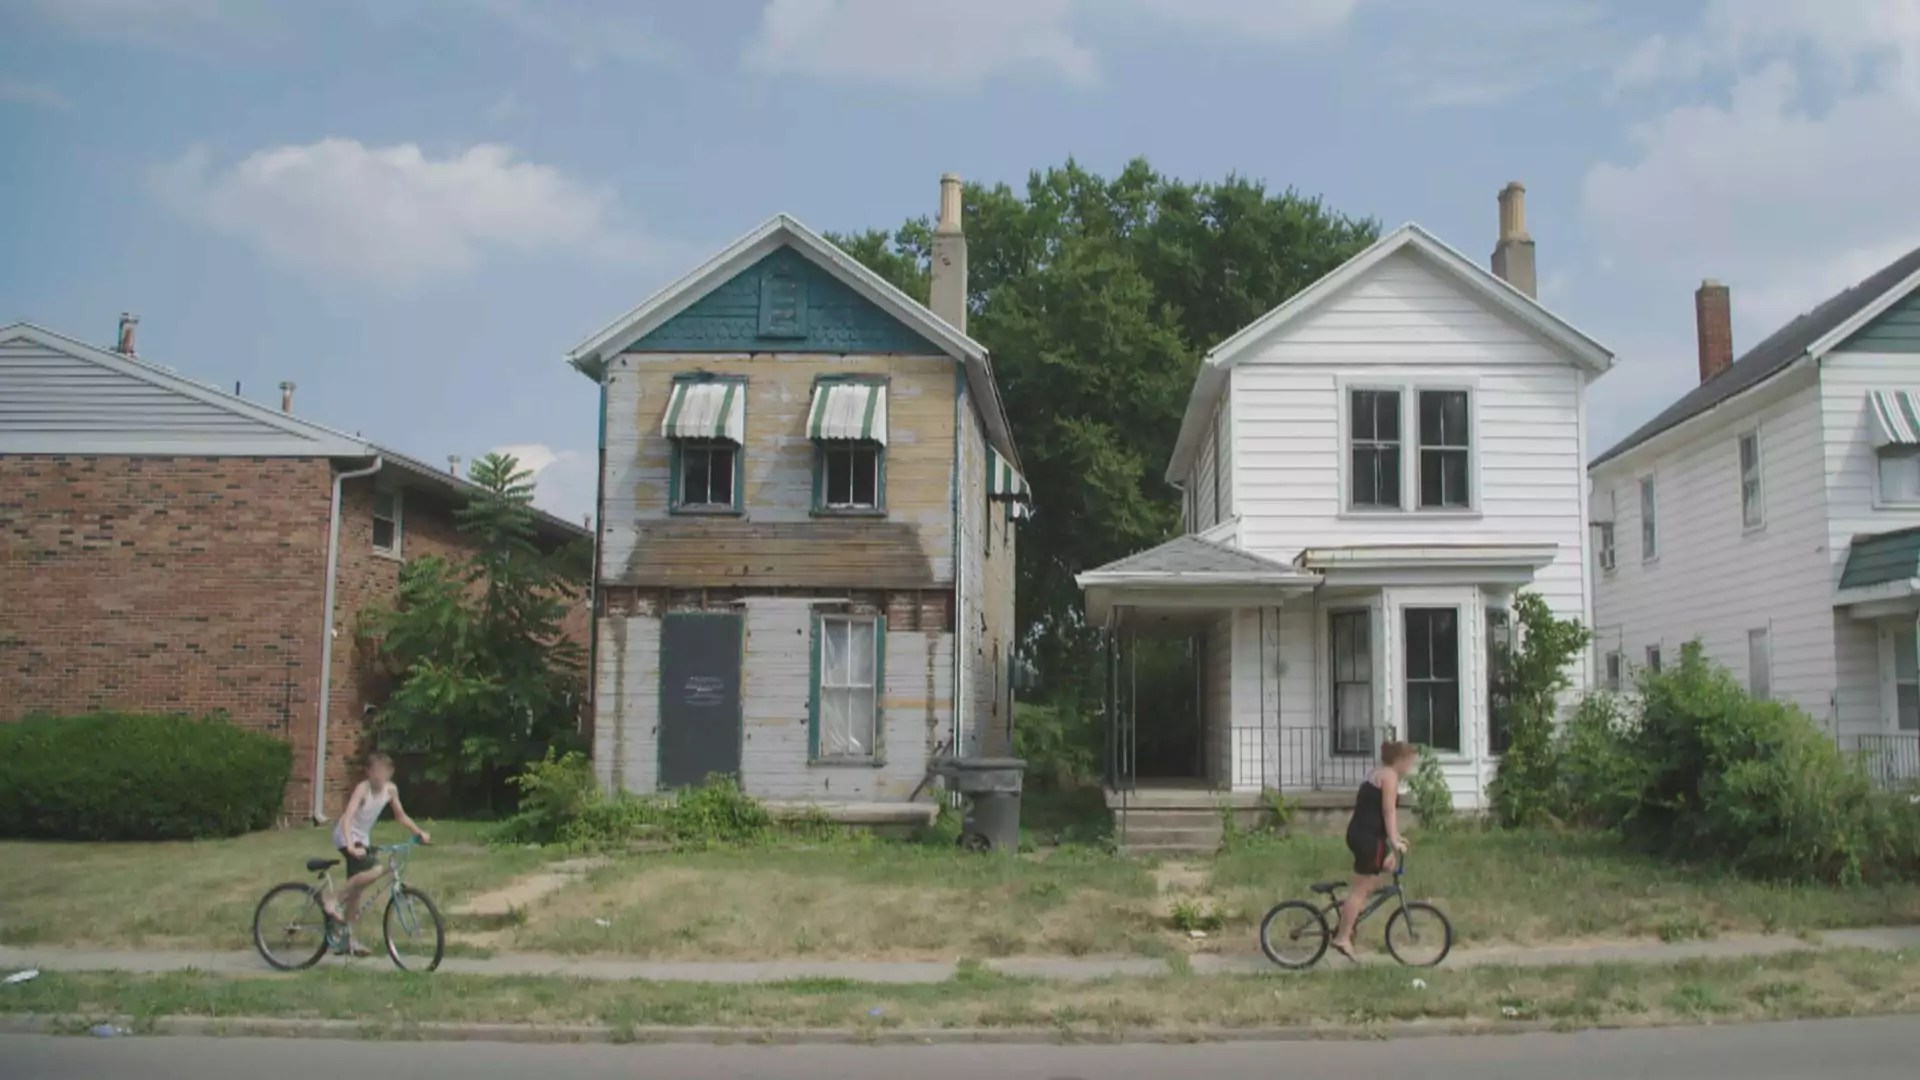 Two people on bicycles ride down a street in front of abandoned houses.